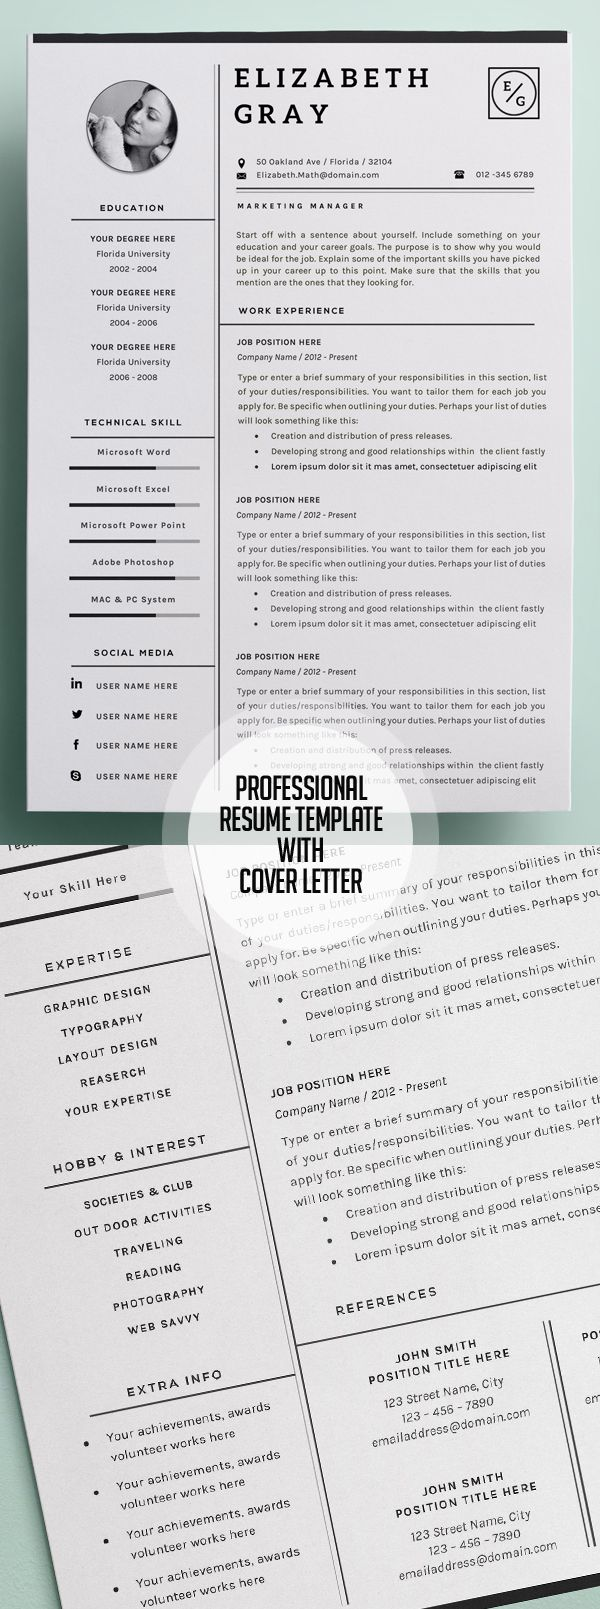 Opposenewapstandardsus  Wonderful  Resume Ideas On Pinterest  Resume Resume Templates And  With Lovable Professional And Modern Resume Template With Page Cover Cvtemplate With Extraordinary Legal Assistant Resumes Also Recruiter Resume Example In Addition Resume Template For High School Graduate And How To Write A Technical Resume As Well As Examples Of Combination Resumes Additionally Federal Resume Guide From Pinterestcom With Opposenewapstandardsus  Lovable  Resume Ideas On Pinterest  Resume Resume Templates And  With Extraordinary Professional And Modern Resume Template With Page Cover Cvtemplate And Wonderful Legal Assistant Resumes Also Recruiter Resume Example In Addition Resume Template For High School Graduate From Pinterestcom